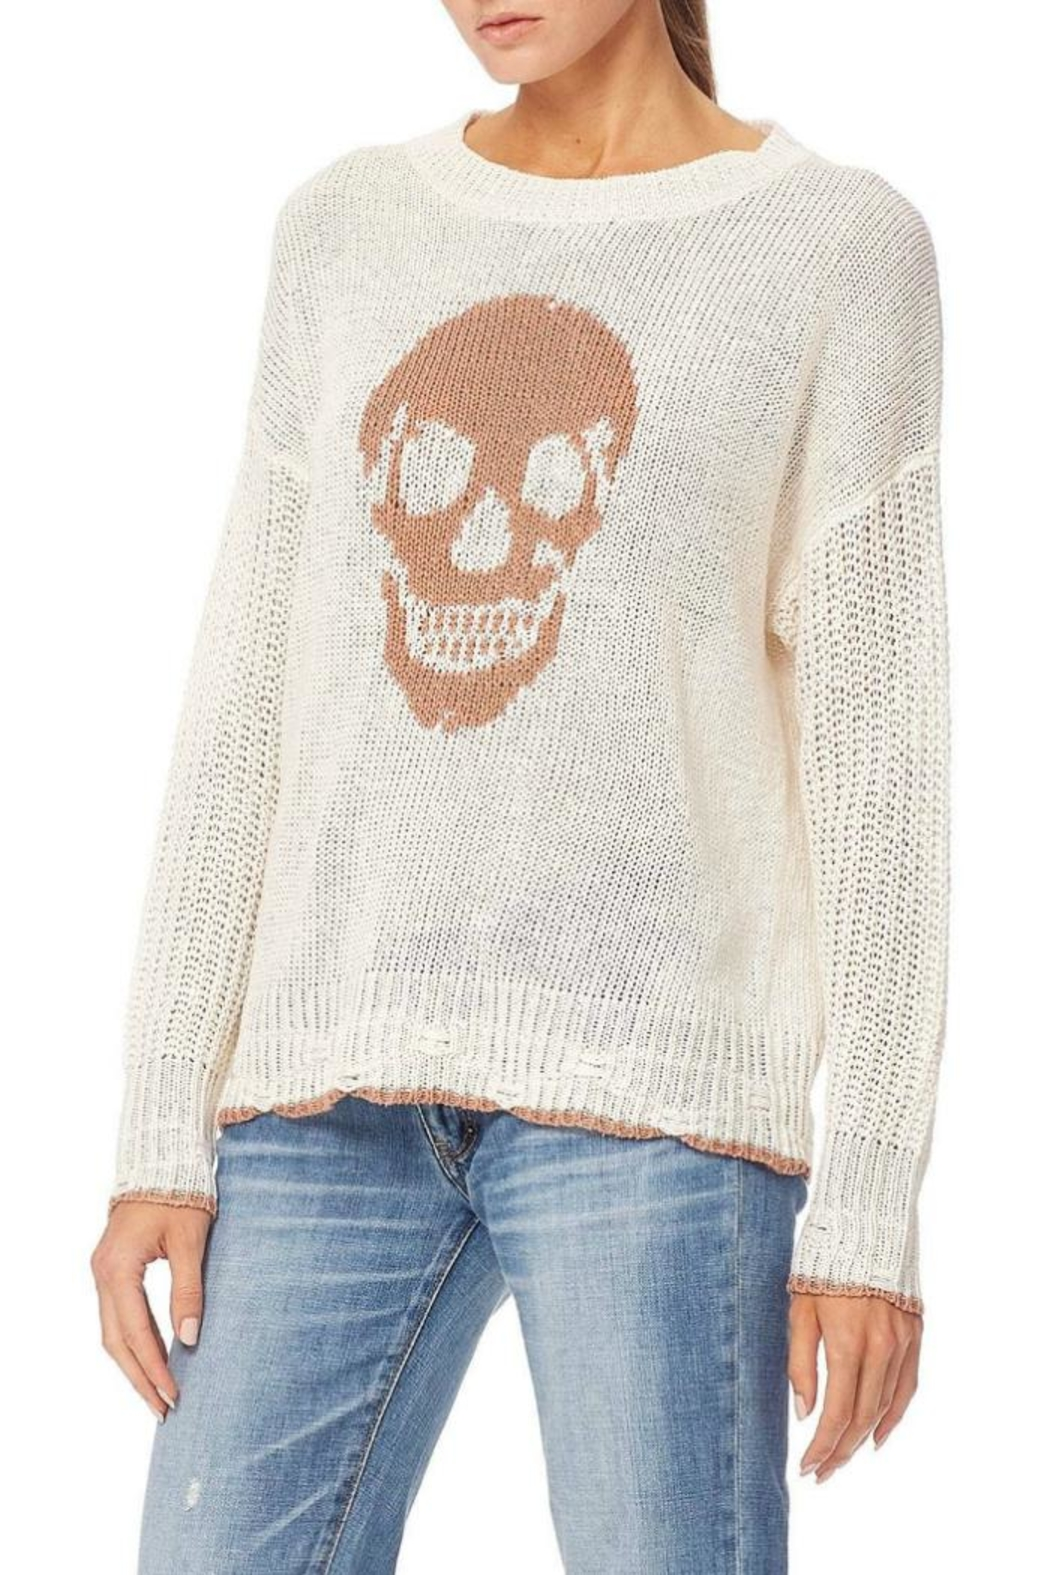 Skull Cashmere Grecia Knit Sweater - Side Cropped Image